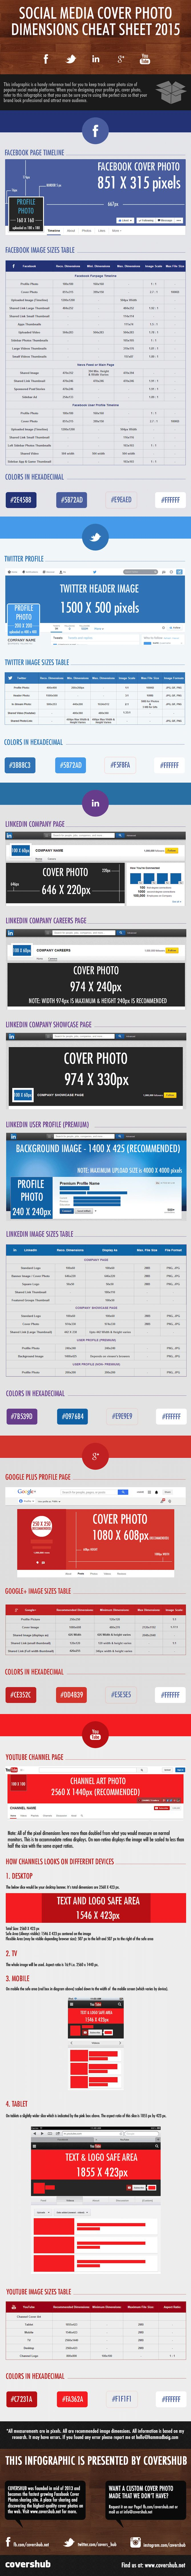 The Ultimate Guide to Social Media Image Dimensions [Infographic] (via @HubSpot)